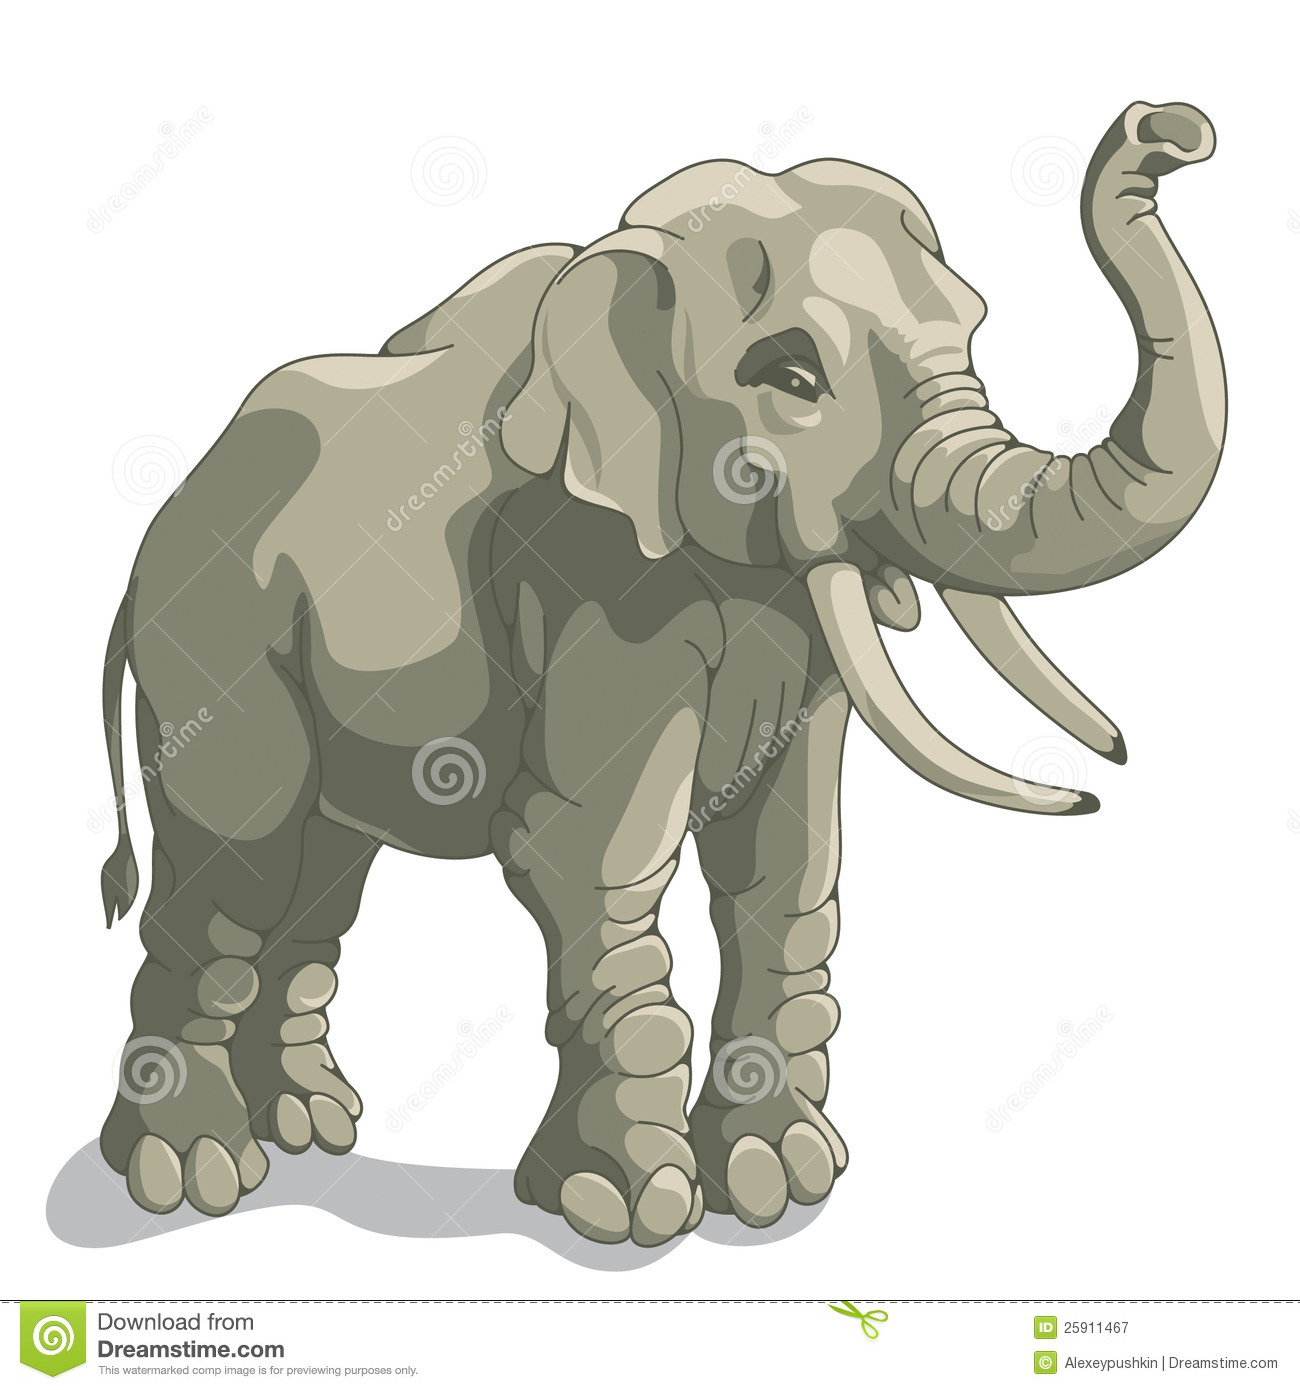 Elephant stock vector. Illustration of asian, african ...